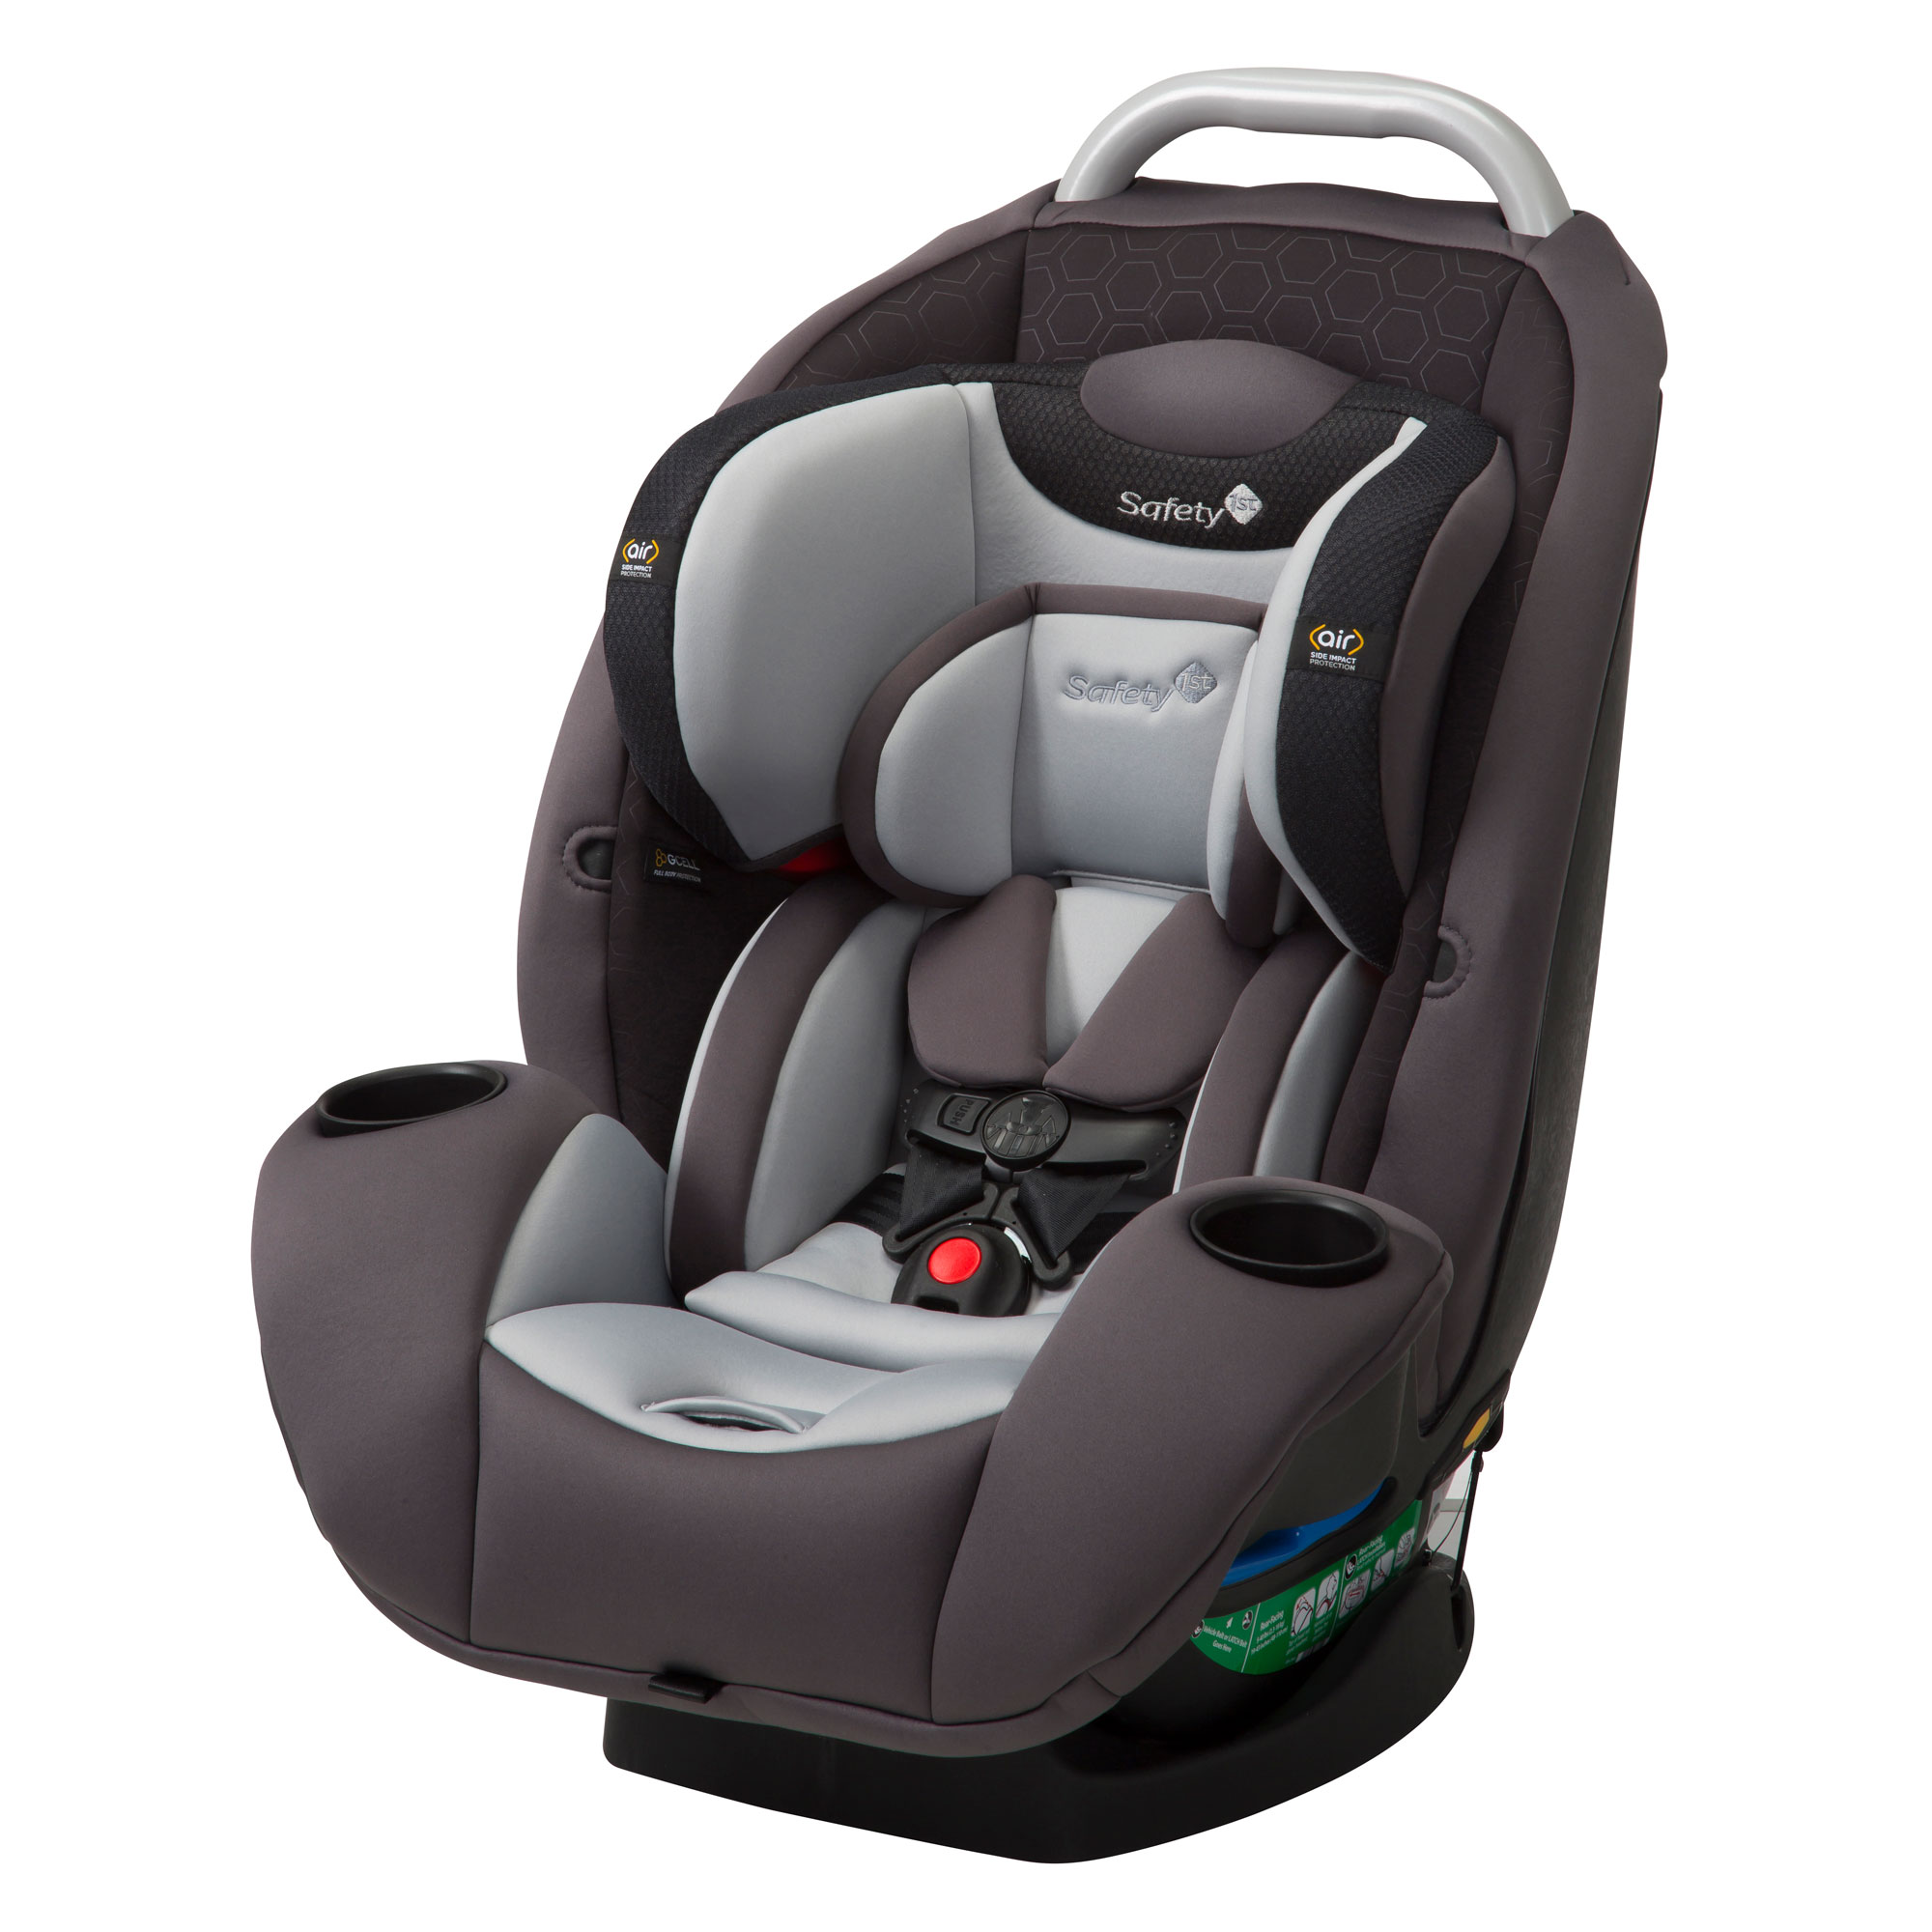 Safety 1st UltraMax Air 360 4 In 1 Convertible 120 Lb Car Seat Raven HX Gray